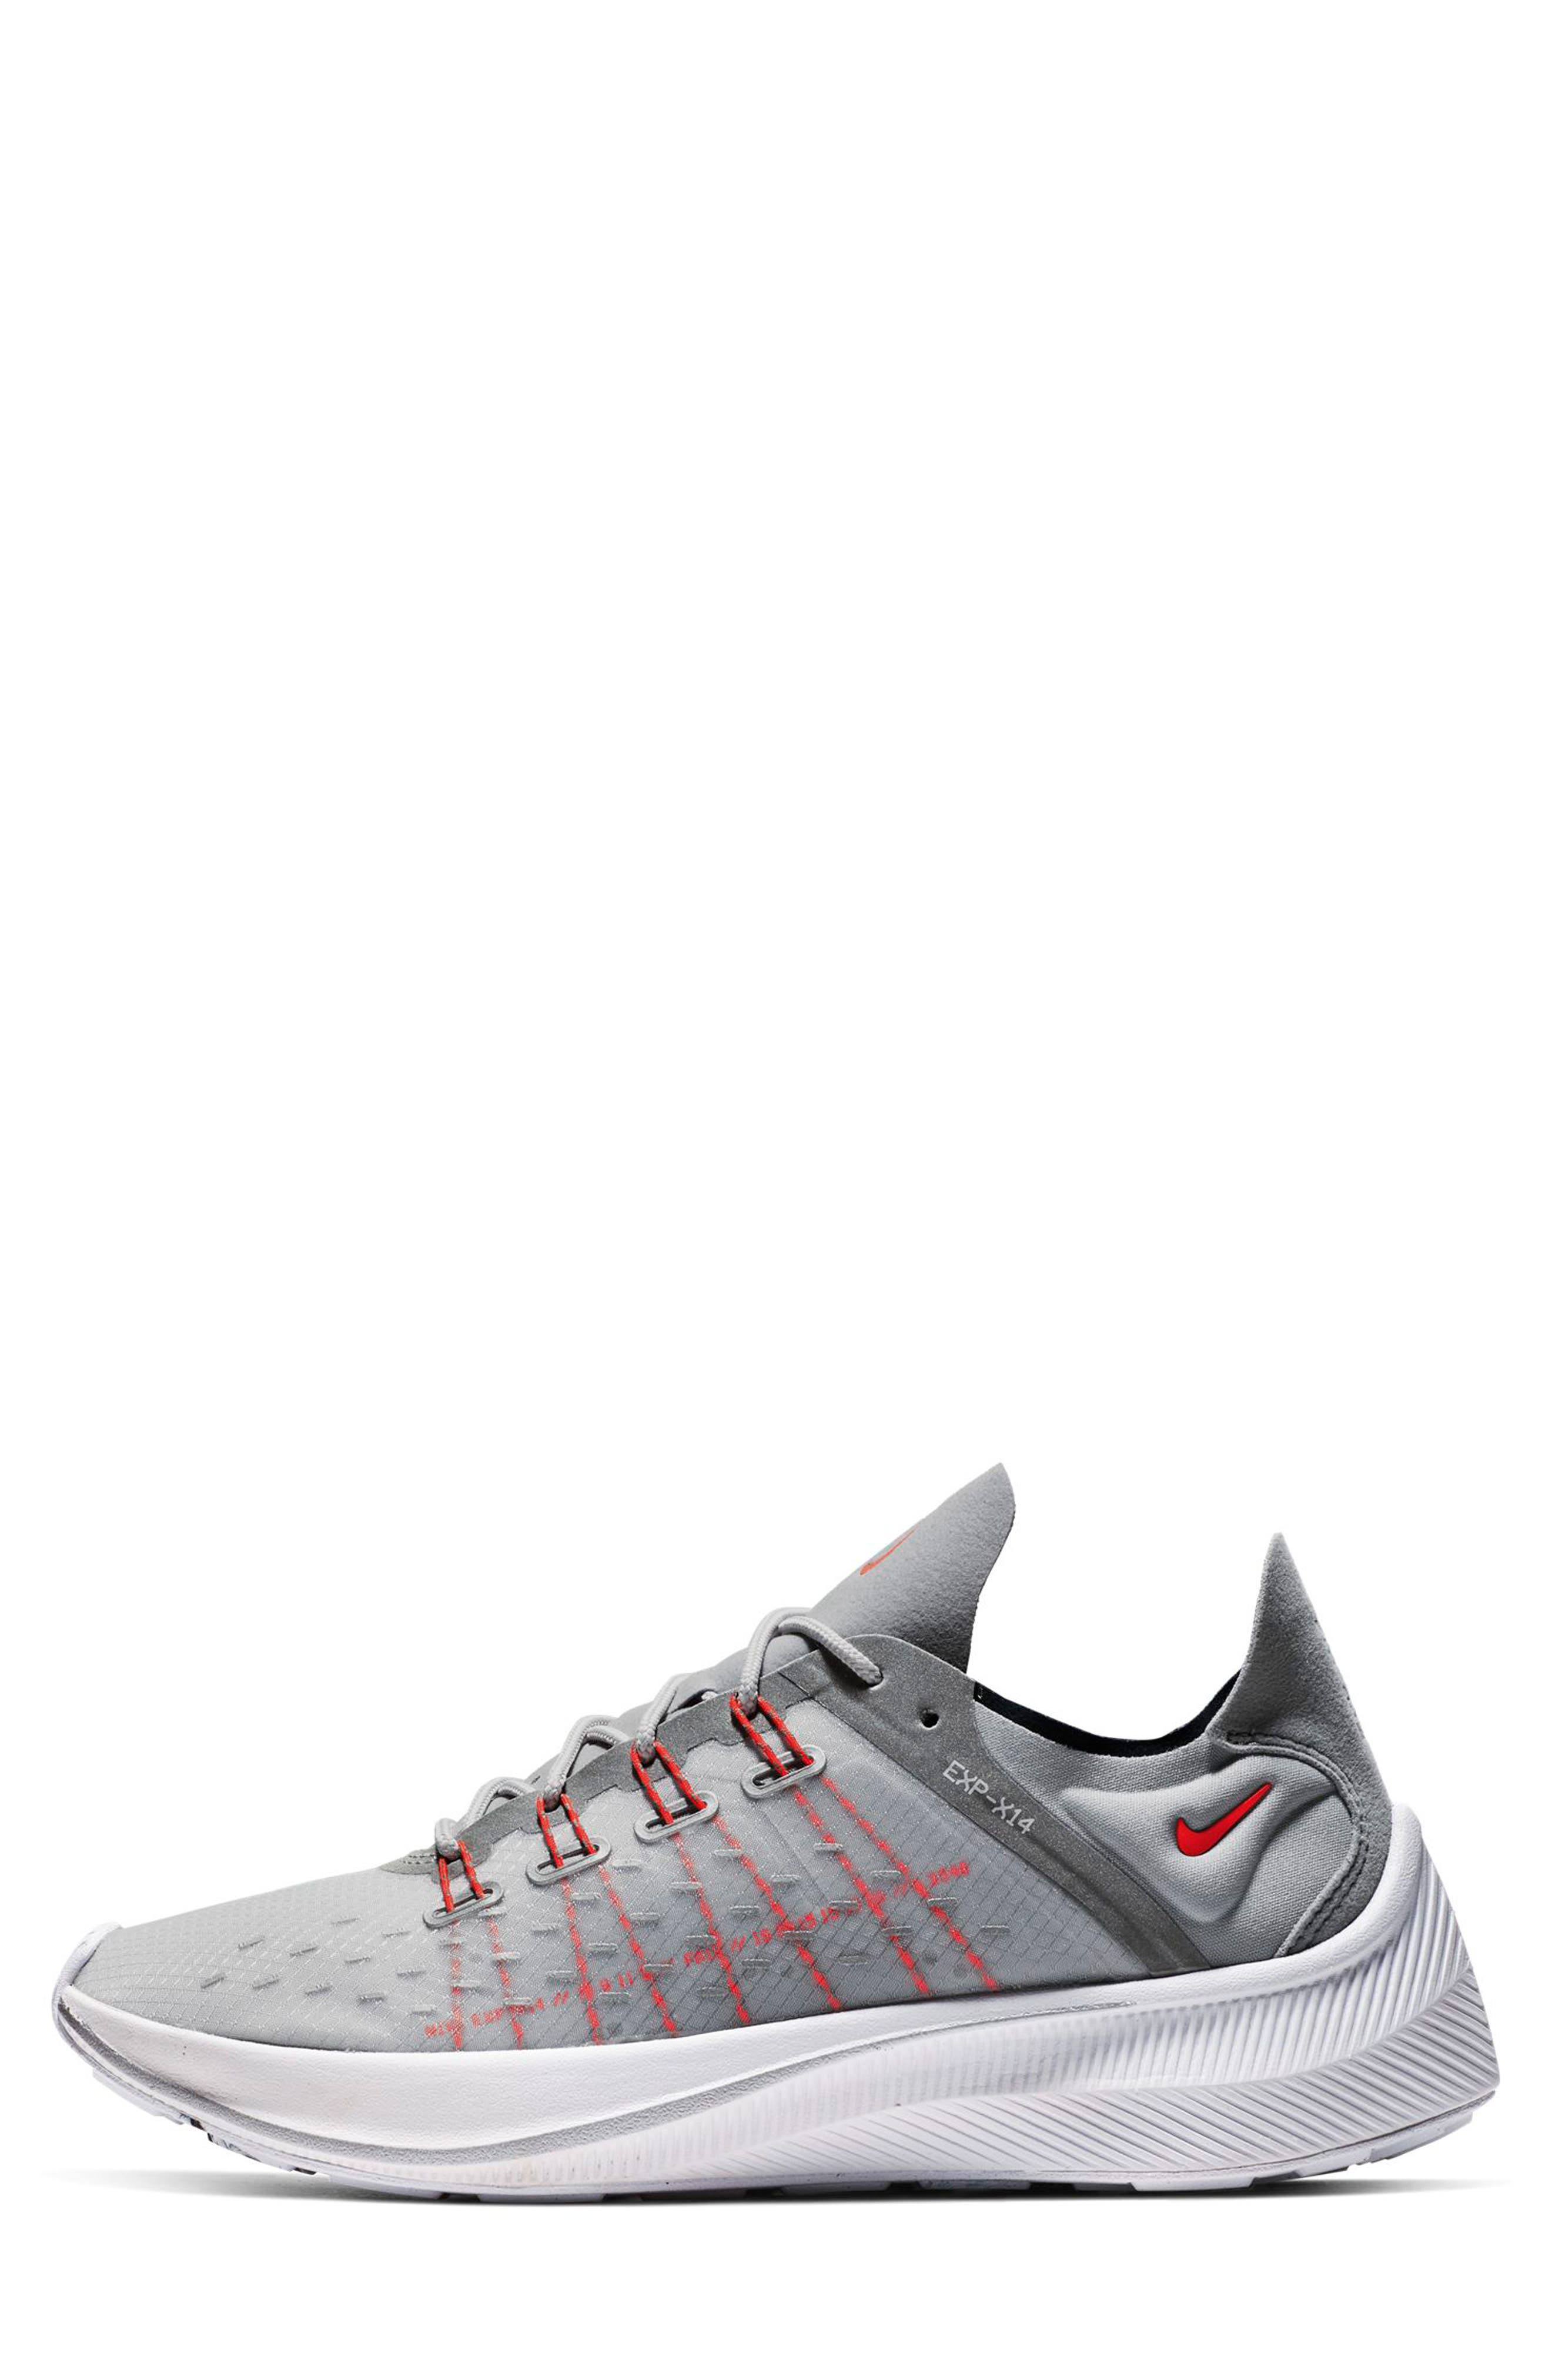 EXP-X14 HR Running Shoe,                             Alternate thumbnail 3, color,                             SILVER/ CRIMSON/ OBSIDIAN